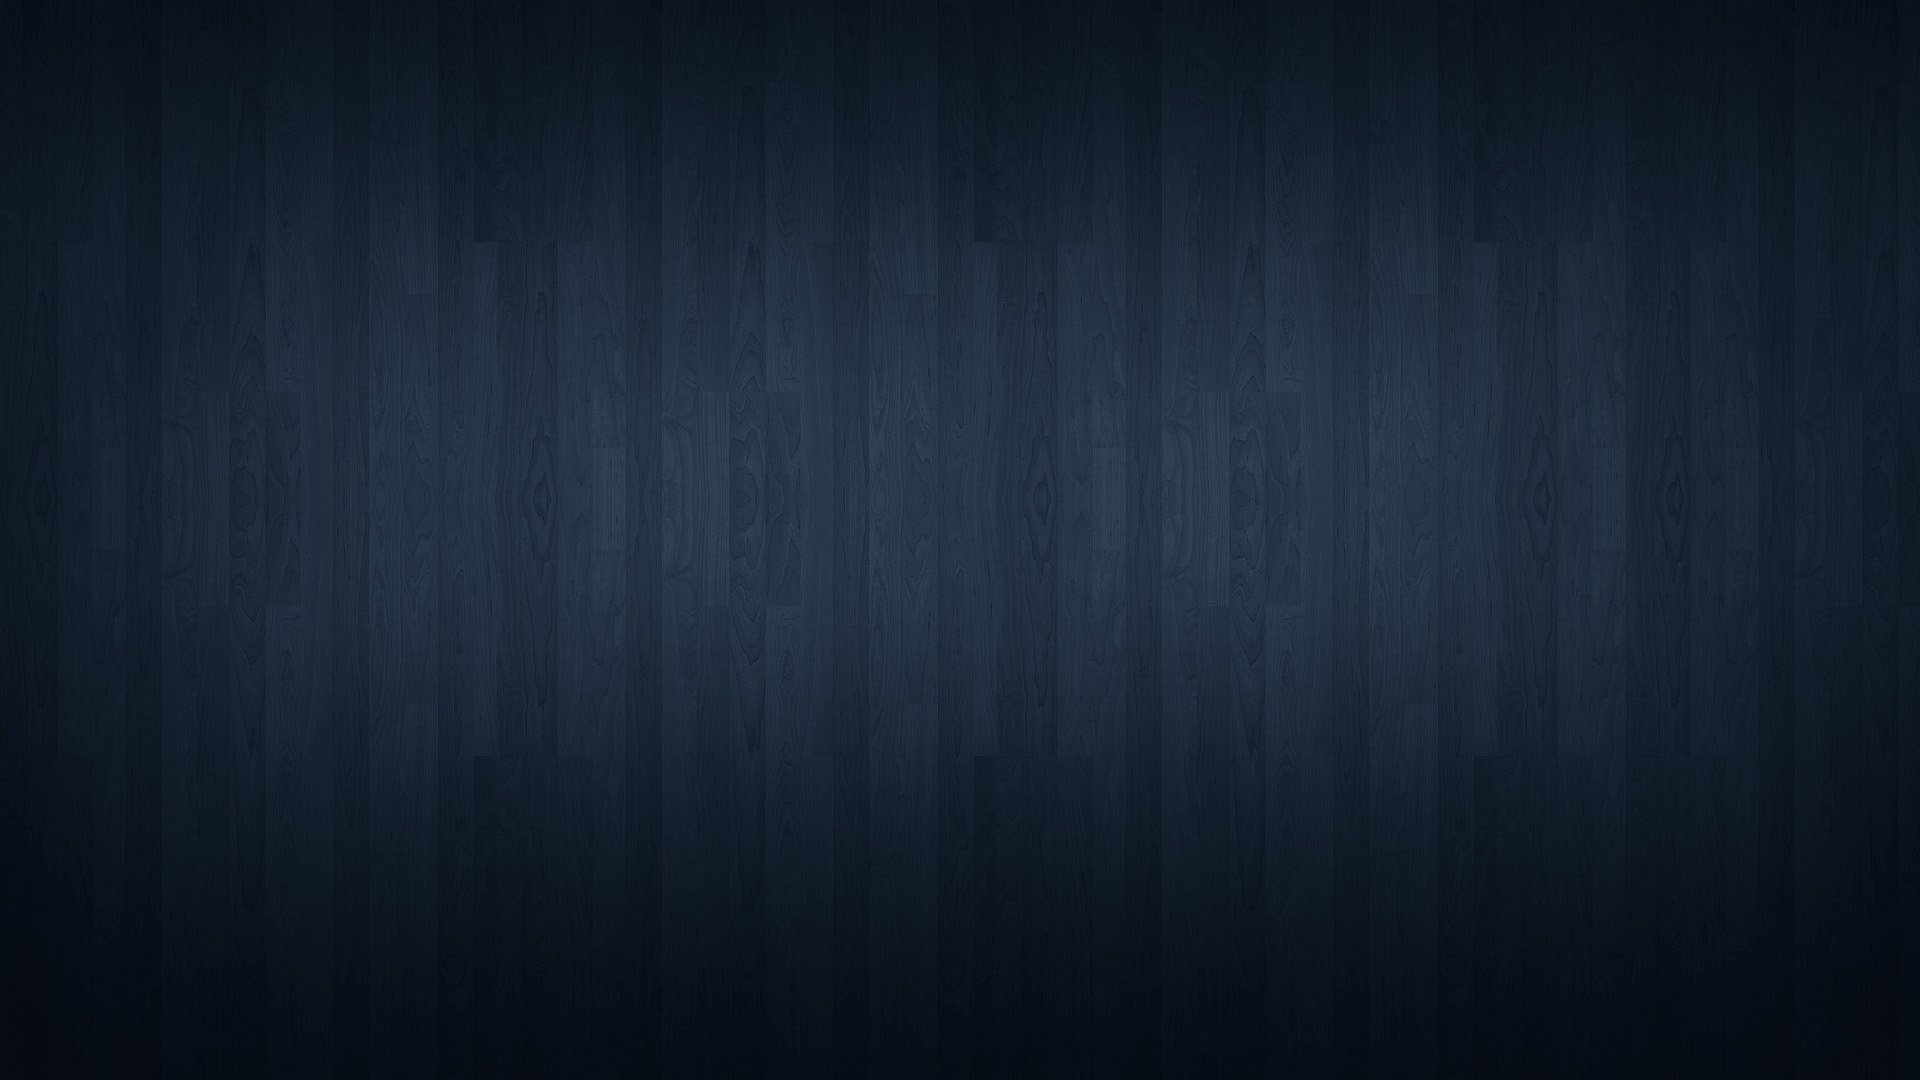 Holz full hd wallpaper and hintergrund 1920x1080 id 376876 for Holz wallpaper